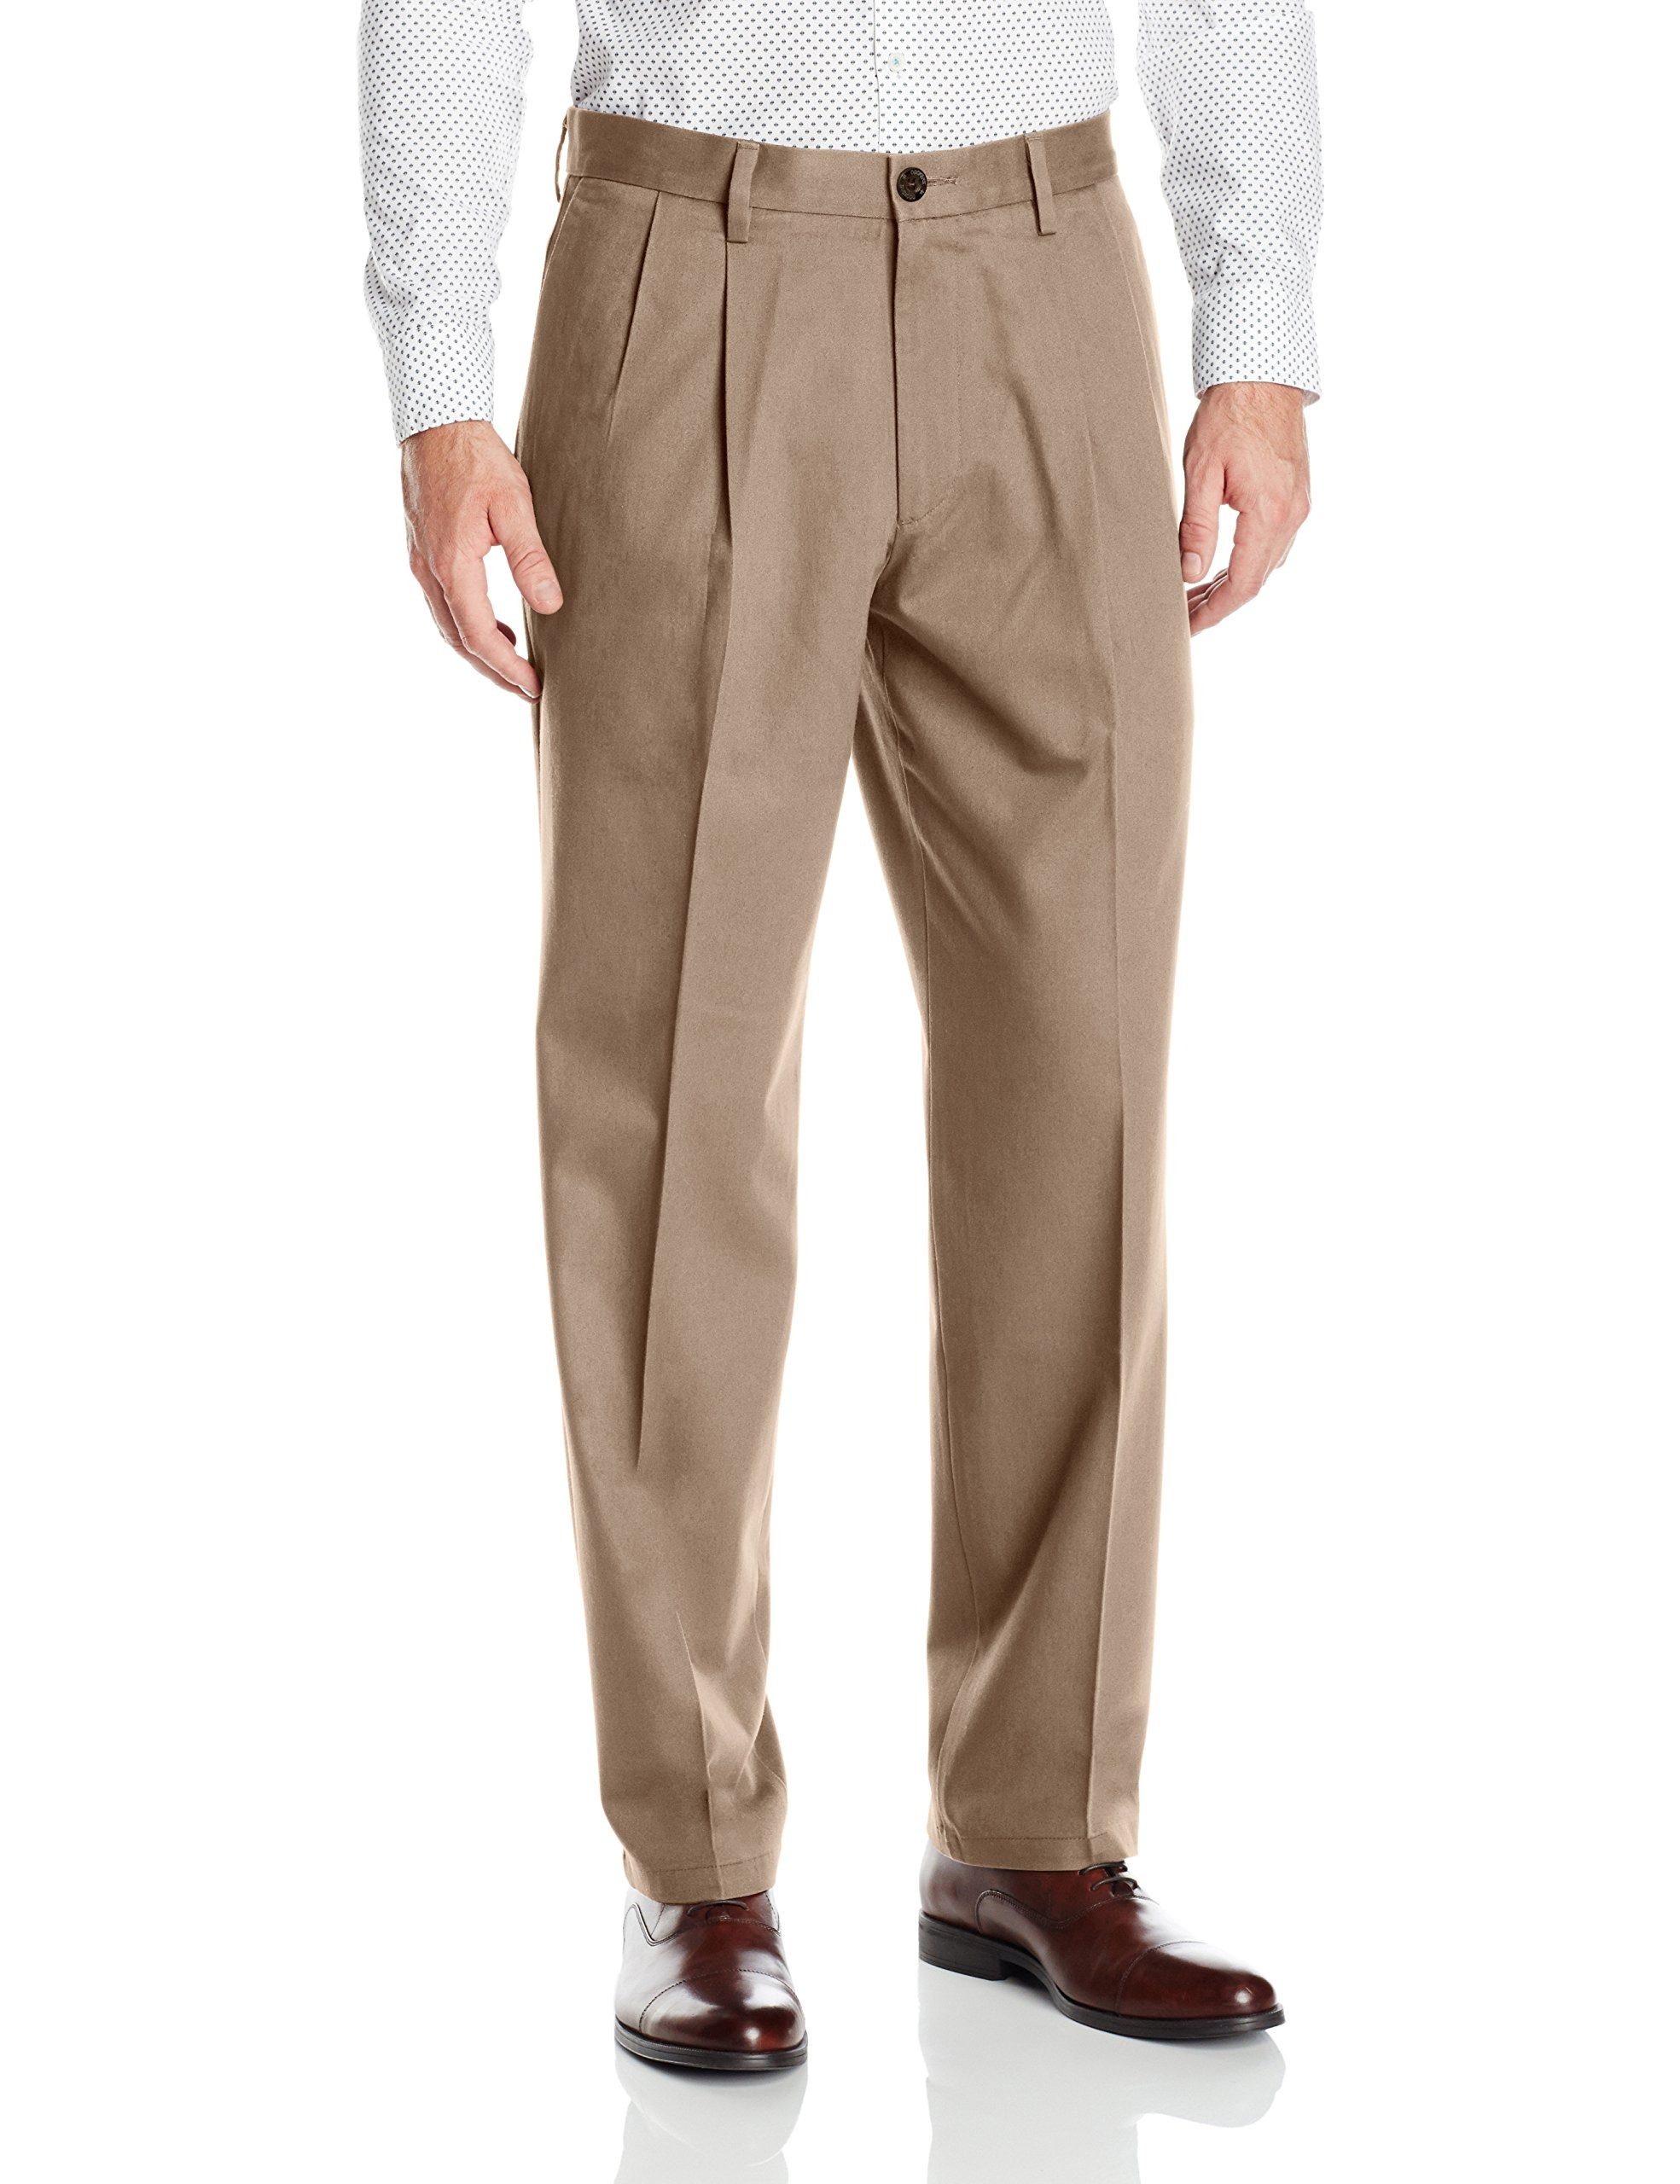 Dockers-NEW-Beige-Mens-Size-38X30-Pleated-Khakis-Chinos-Stretch-Pants